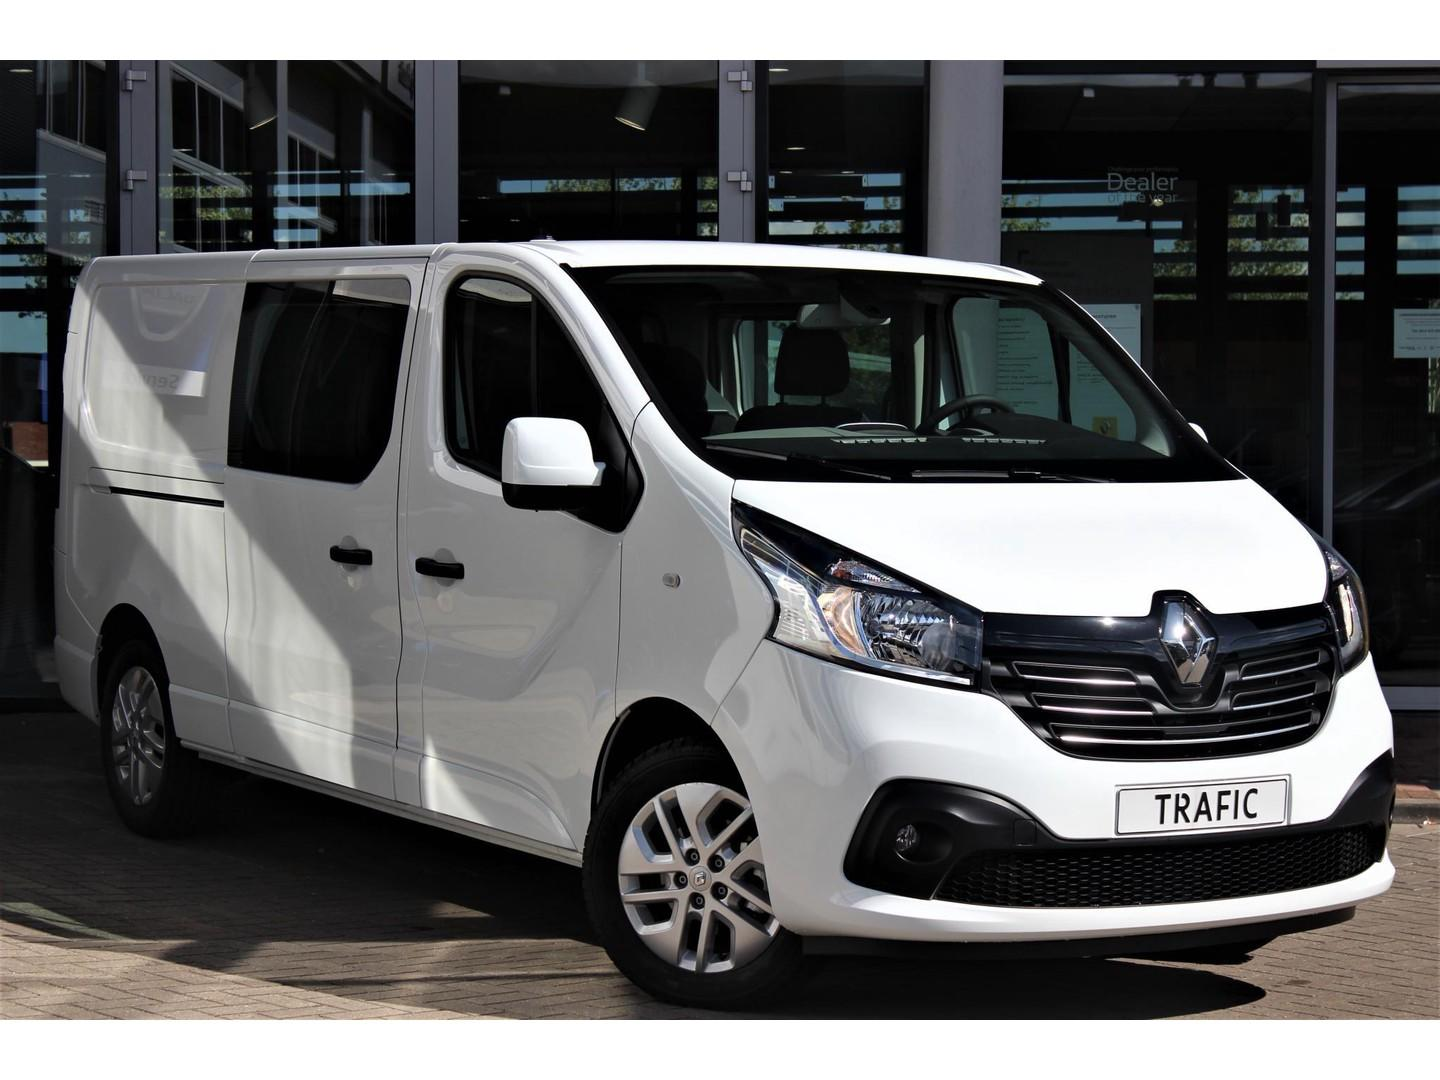 Renault Trafic 1.6 dci t29 l2h1 dc luxe energy 125pk twinturbo